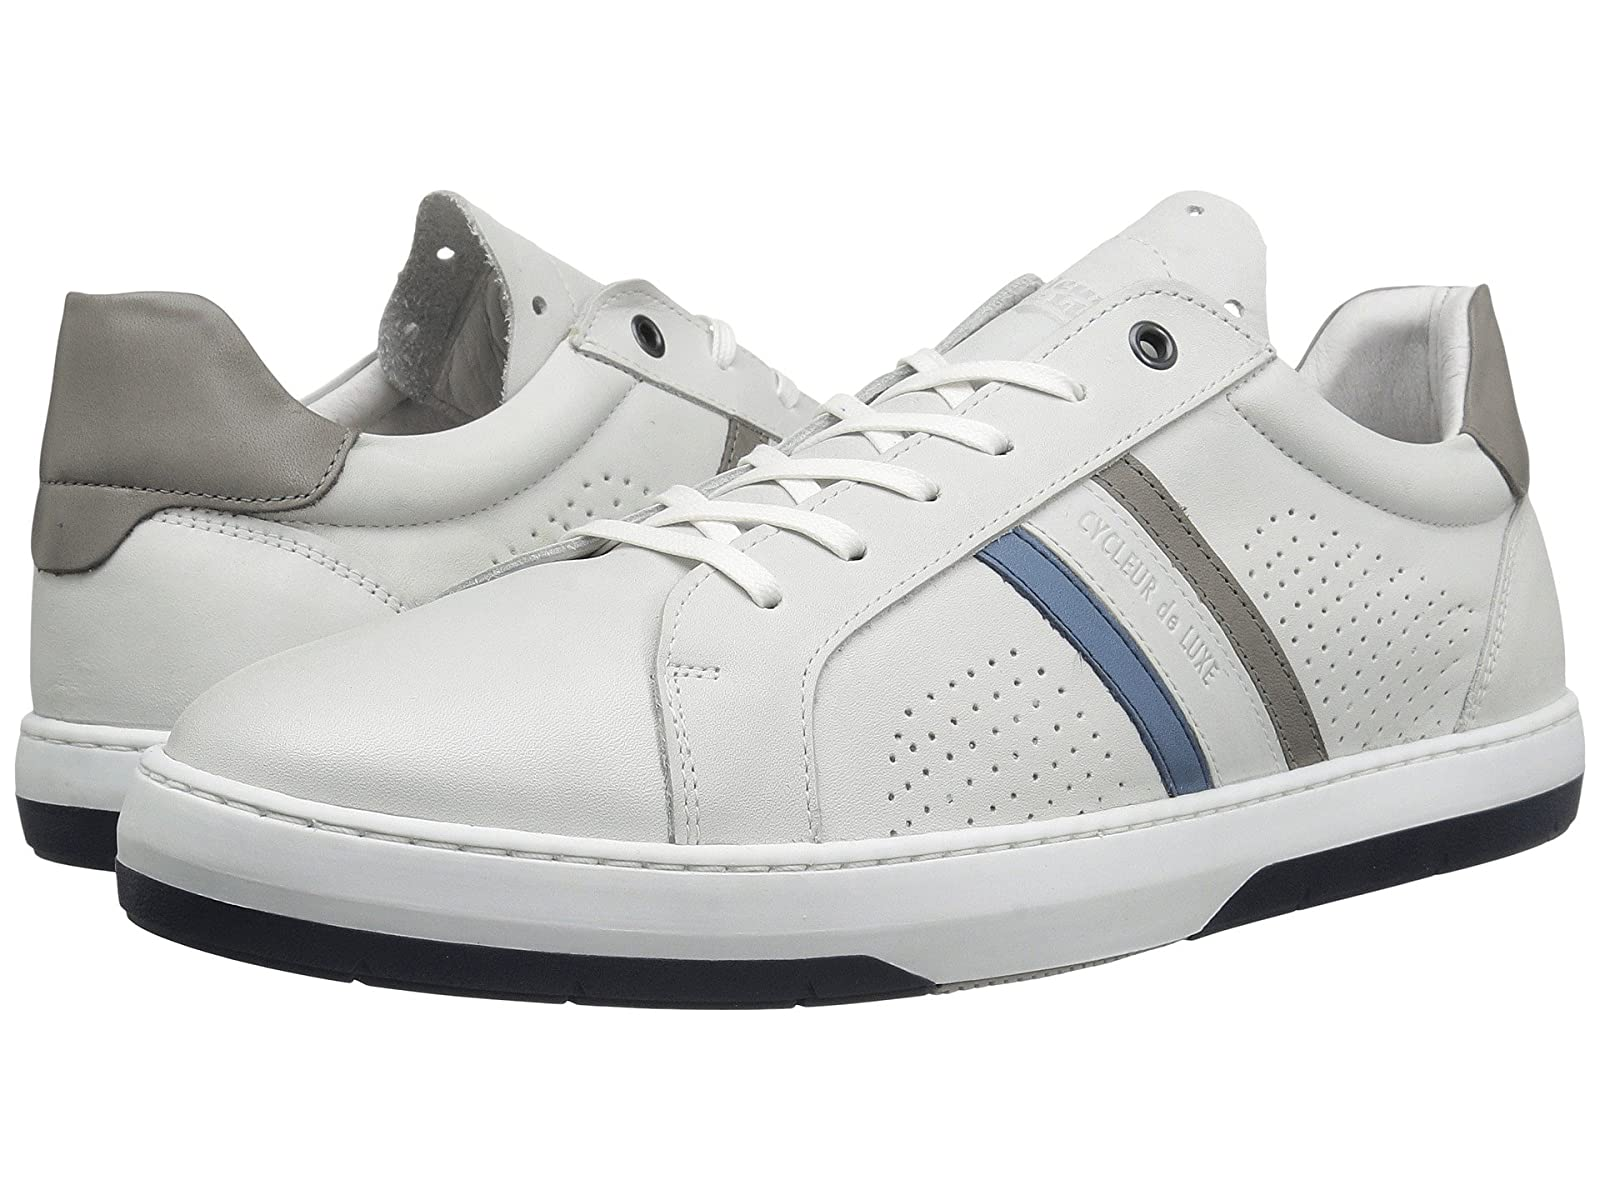 Cycleur de Luxe RayCheap and distinctive eye-catching shoes